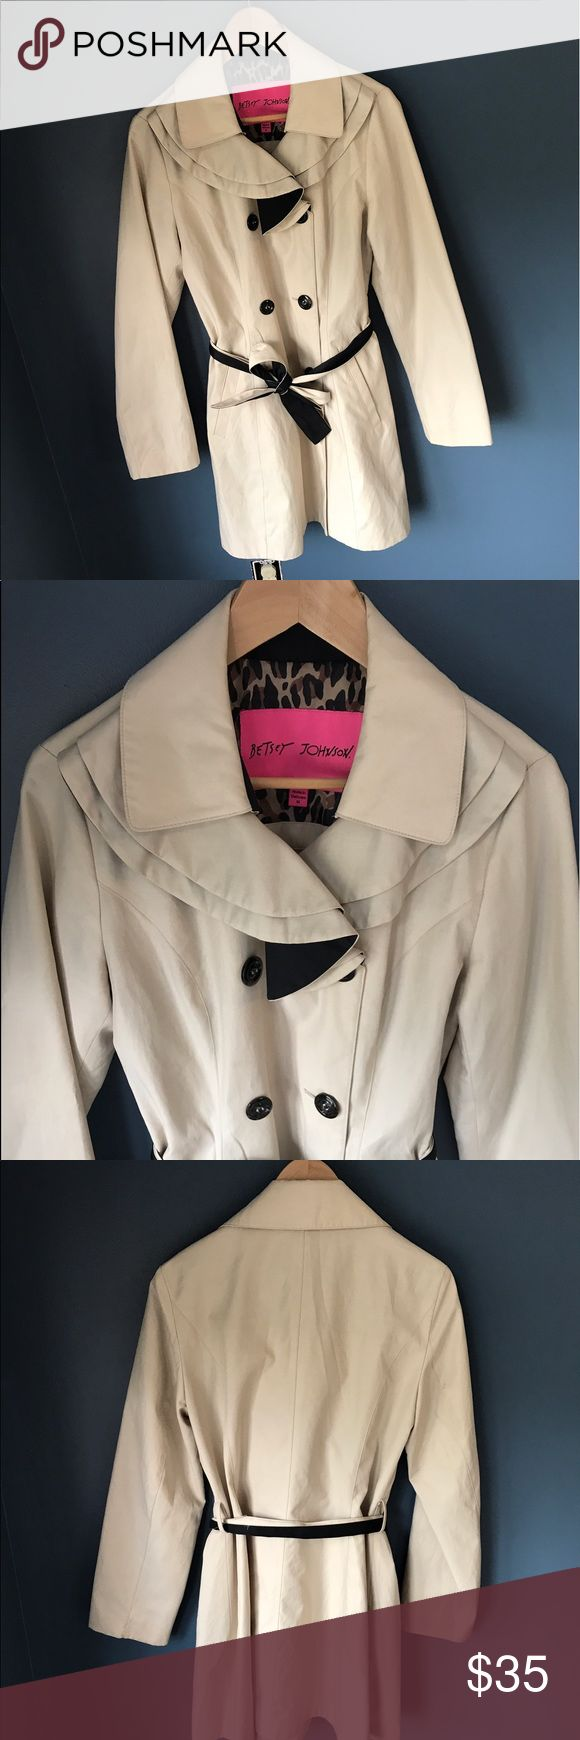 Betsy Johnson Trench Coat This coat is in great condition. Always received tons of compliments on it. Could use a good dry cleaning (price to reflect that). Betsey Johnson Jackets & Coats Trench Coats